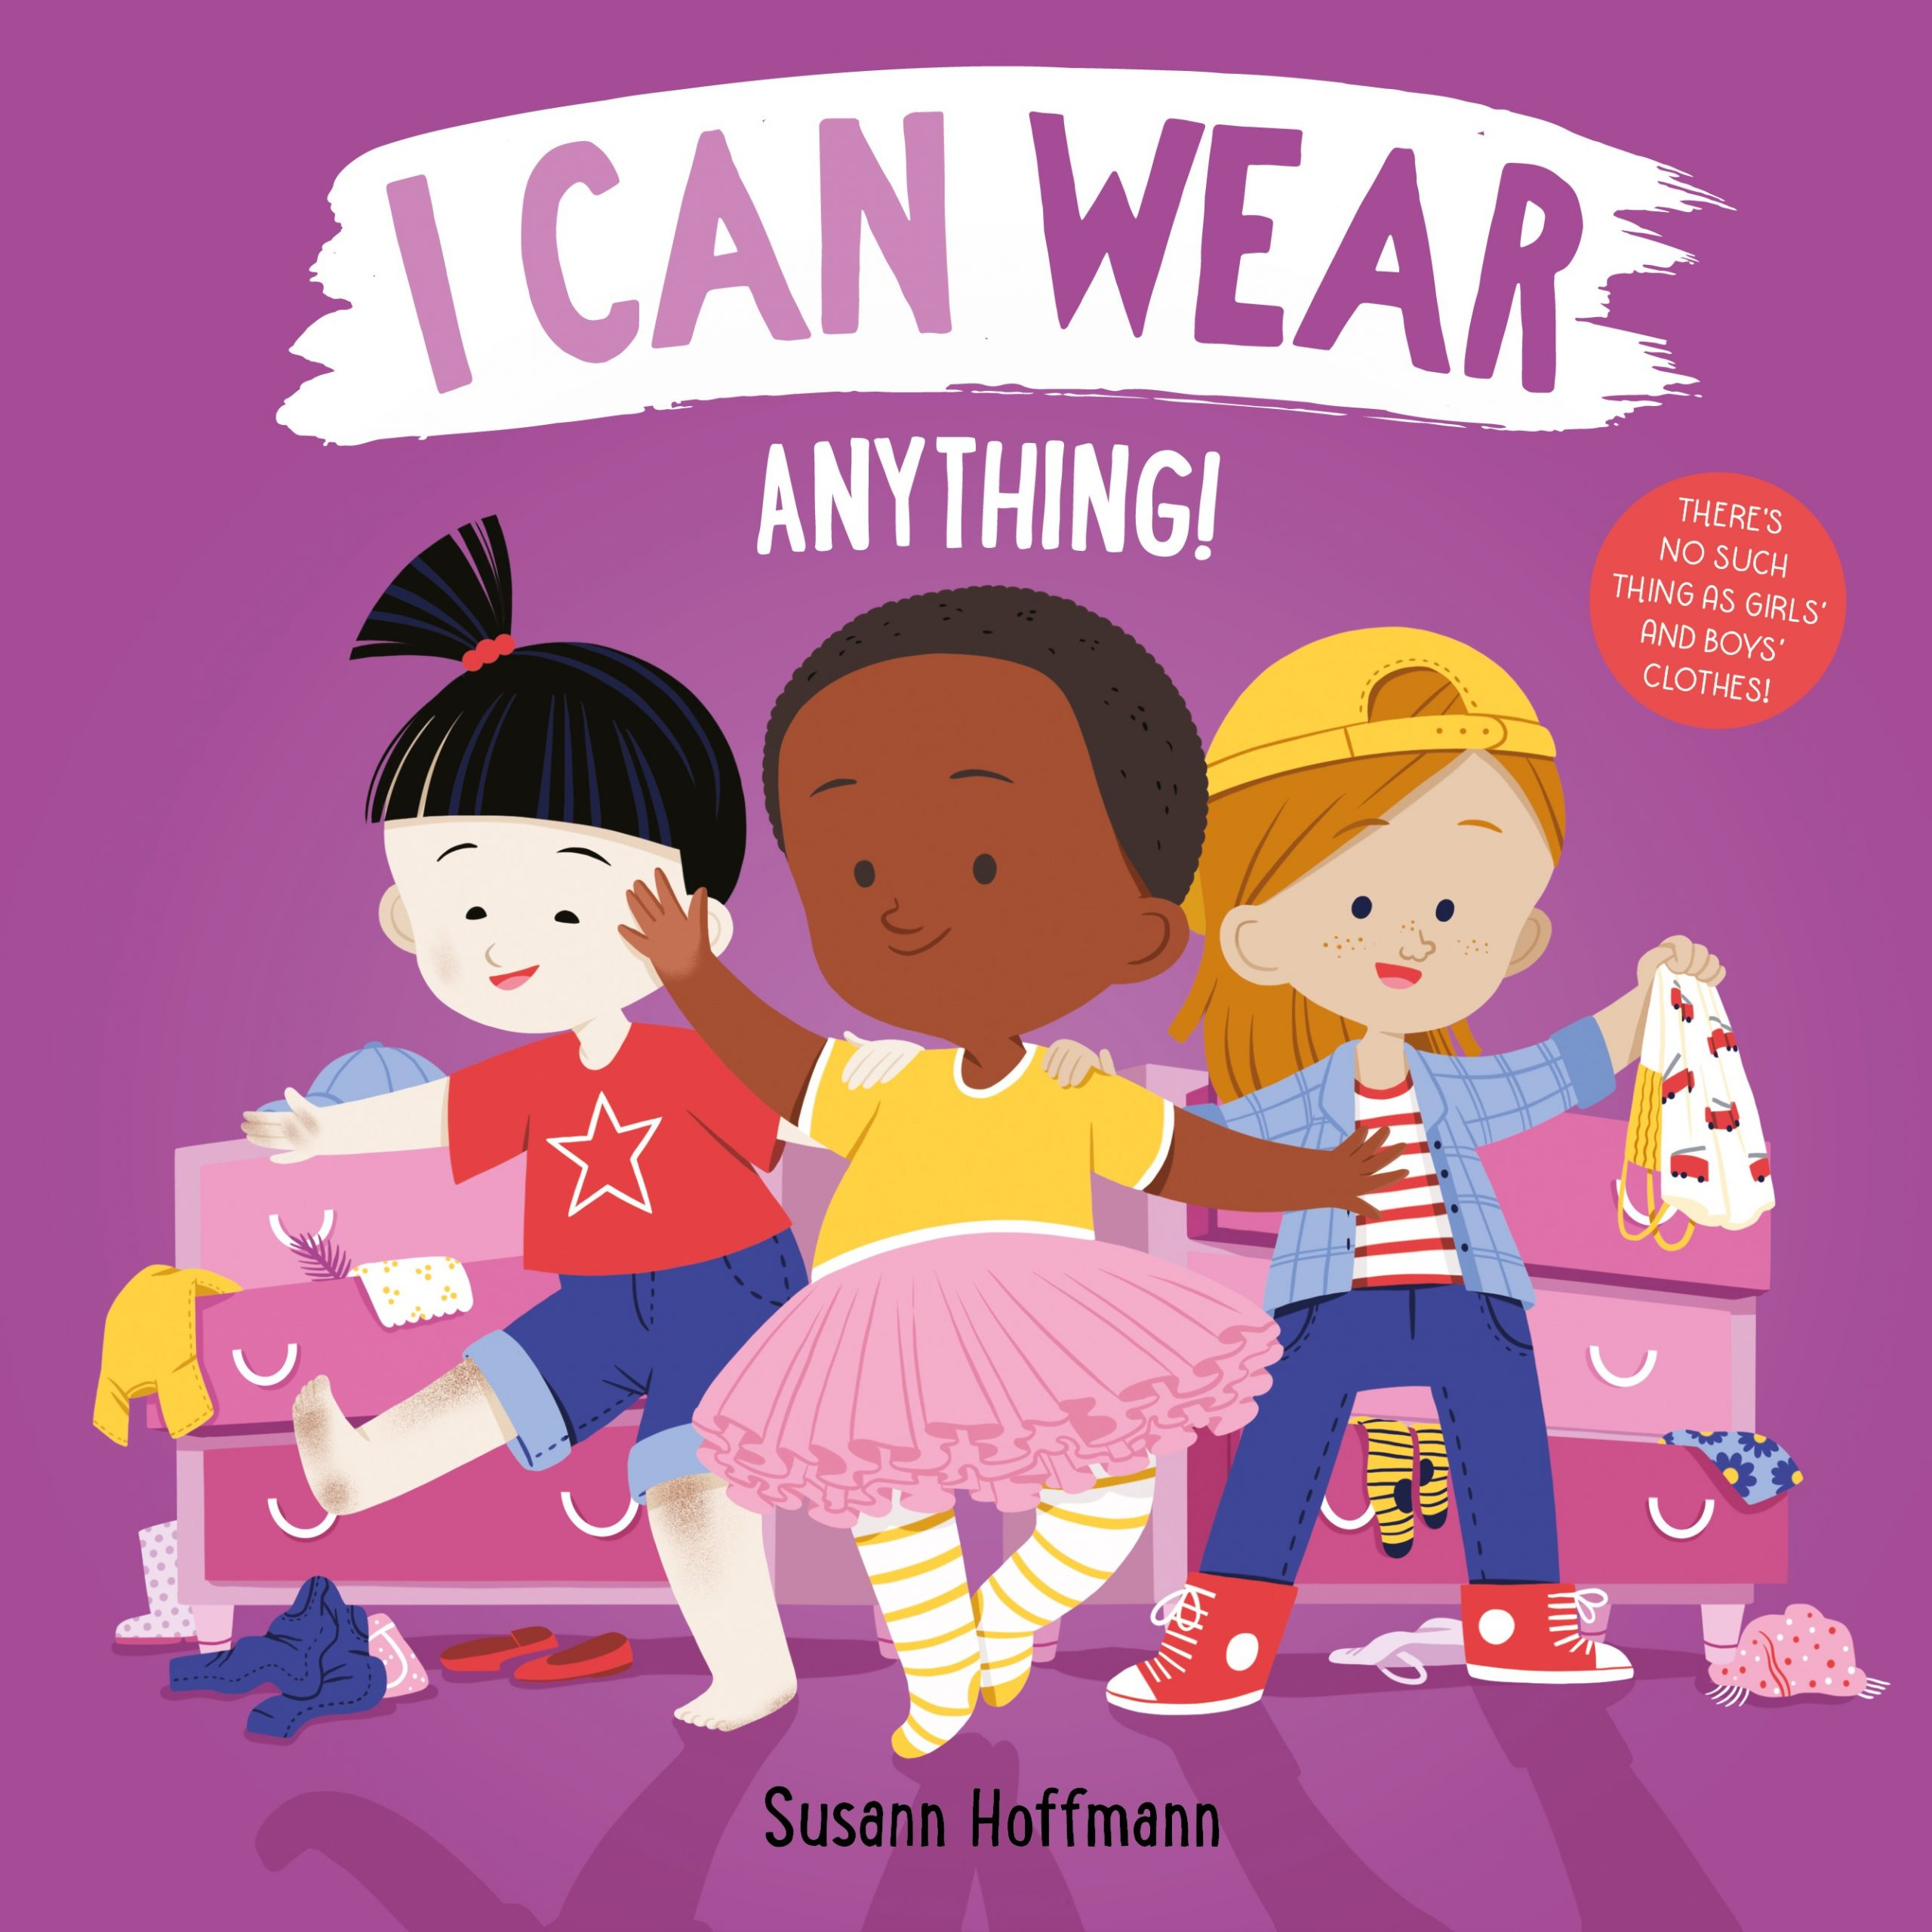 I Can Wear Anything!